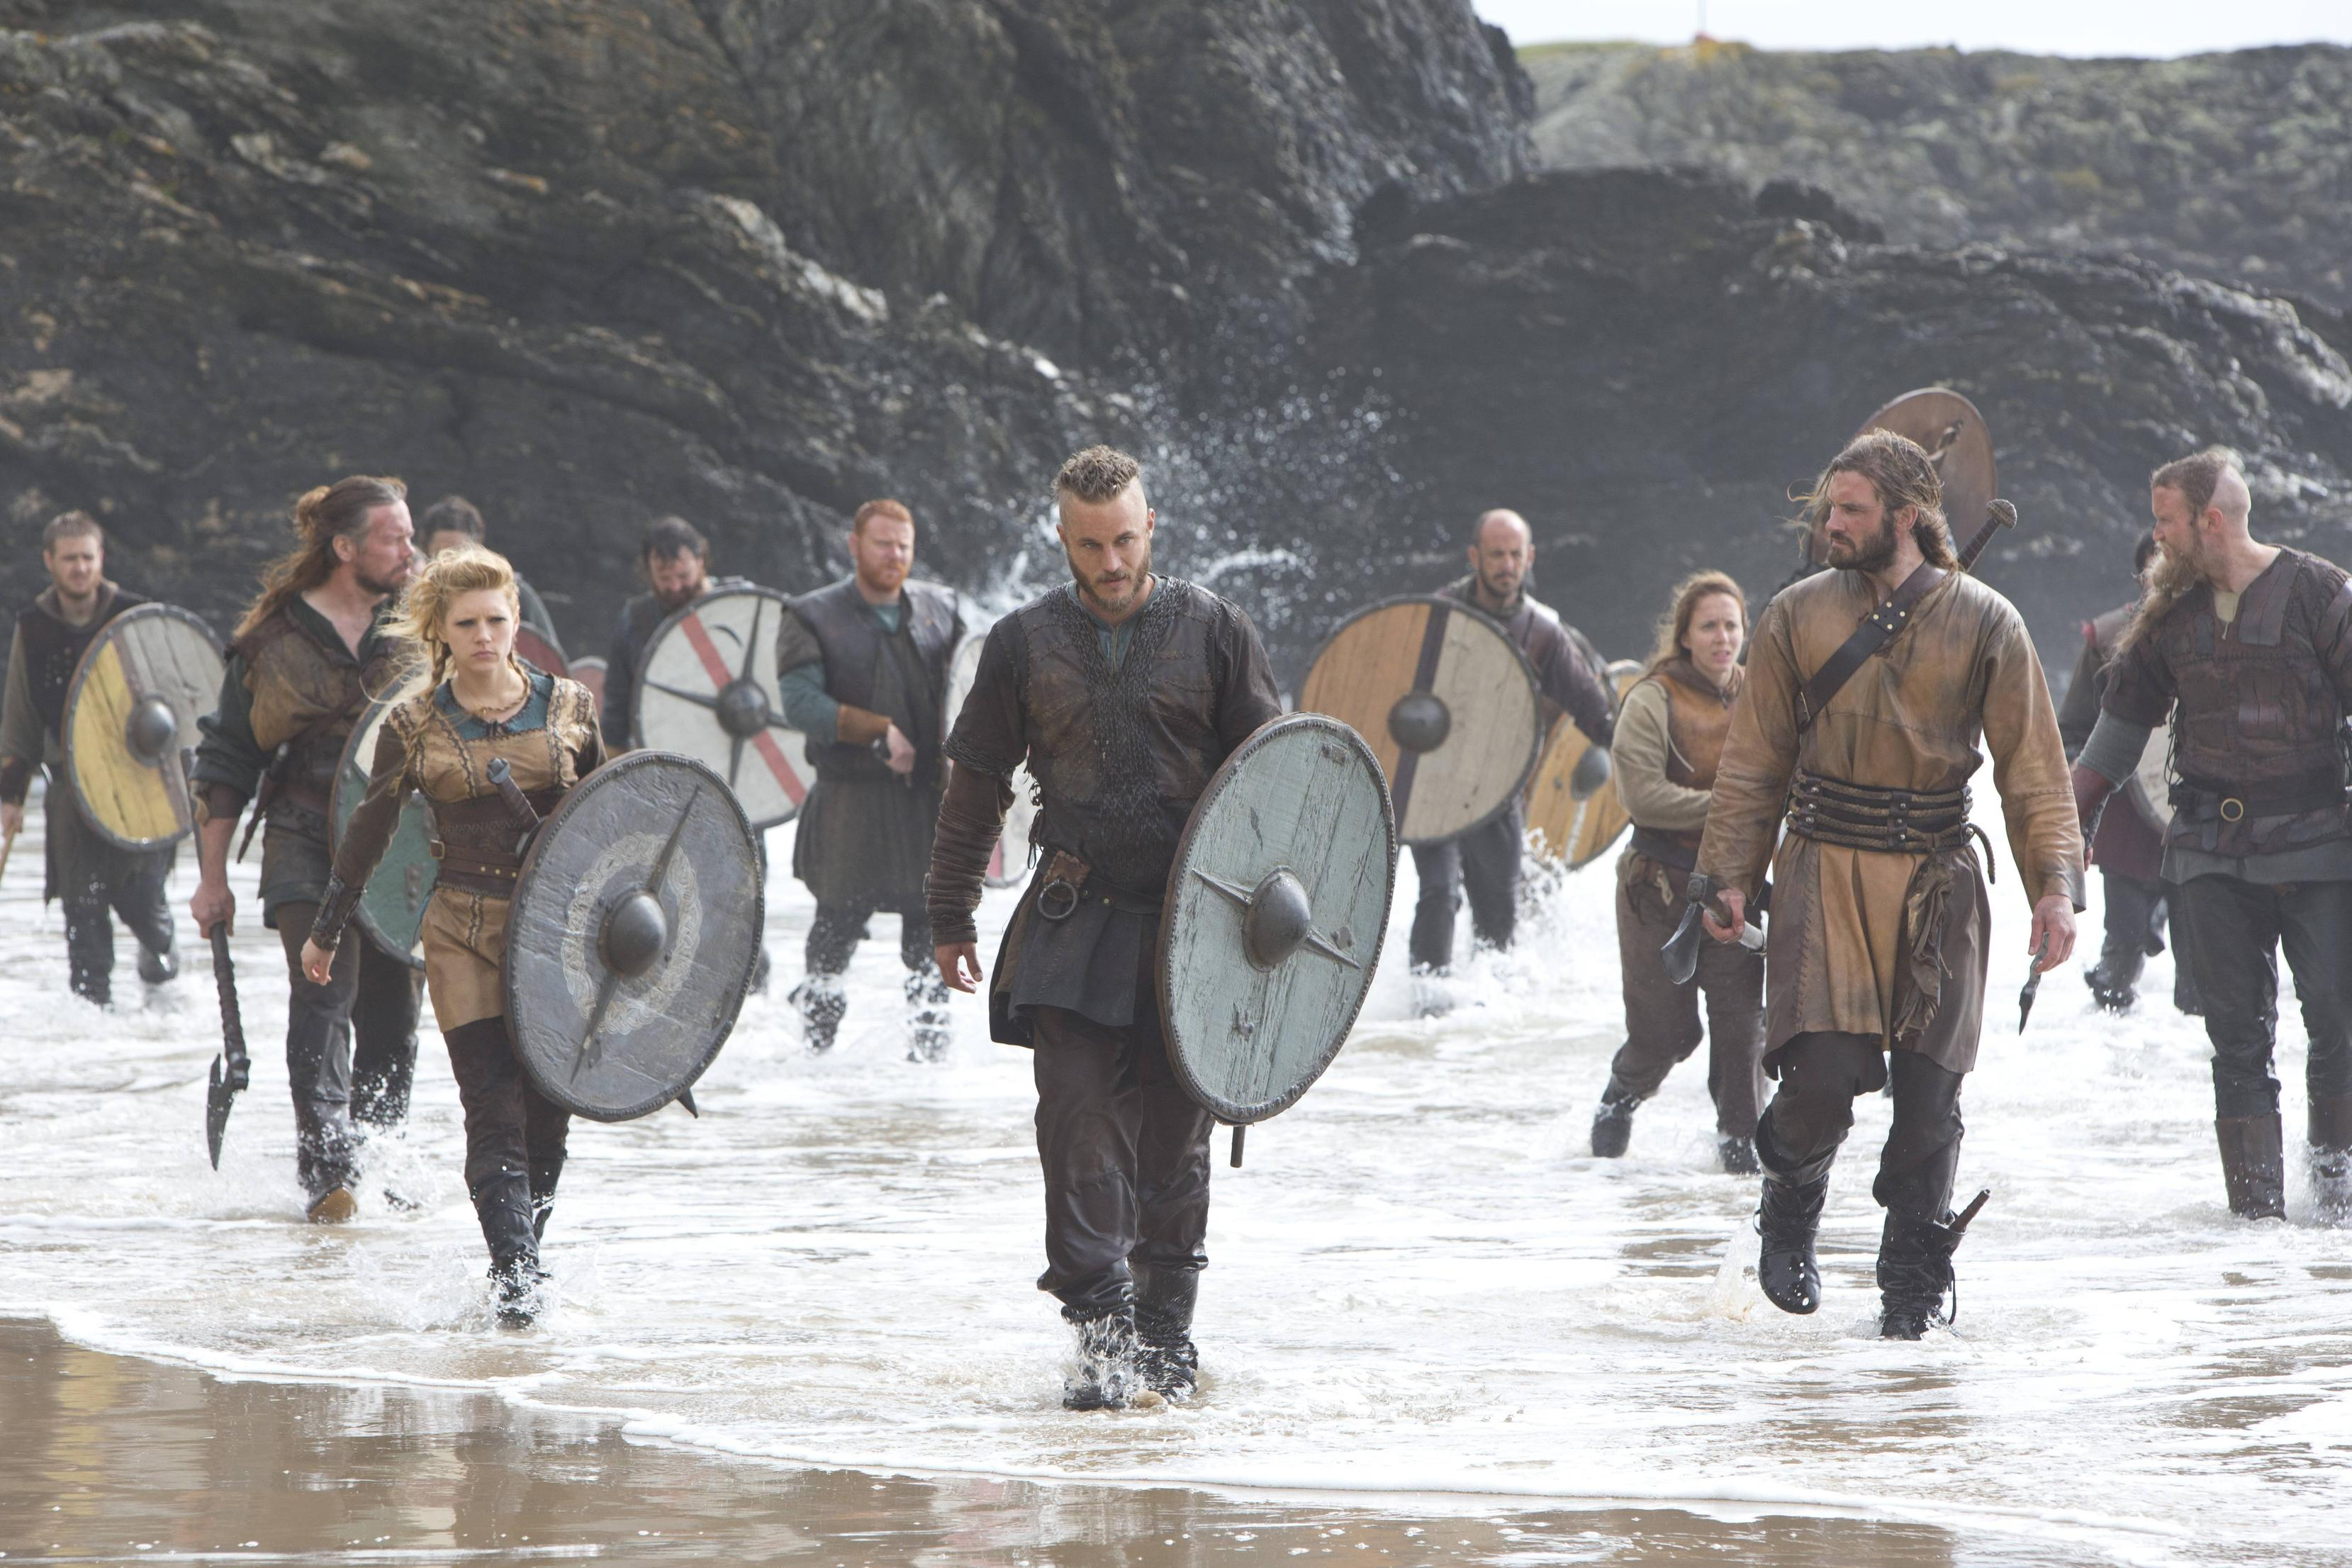 ragnar lothbrok pictures and images